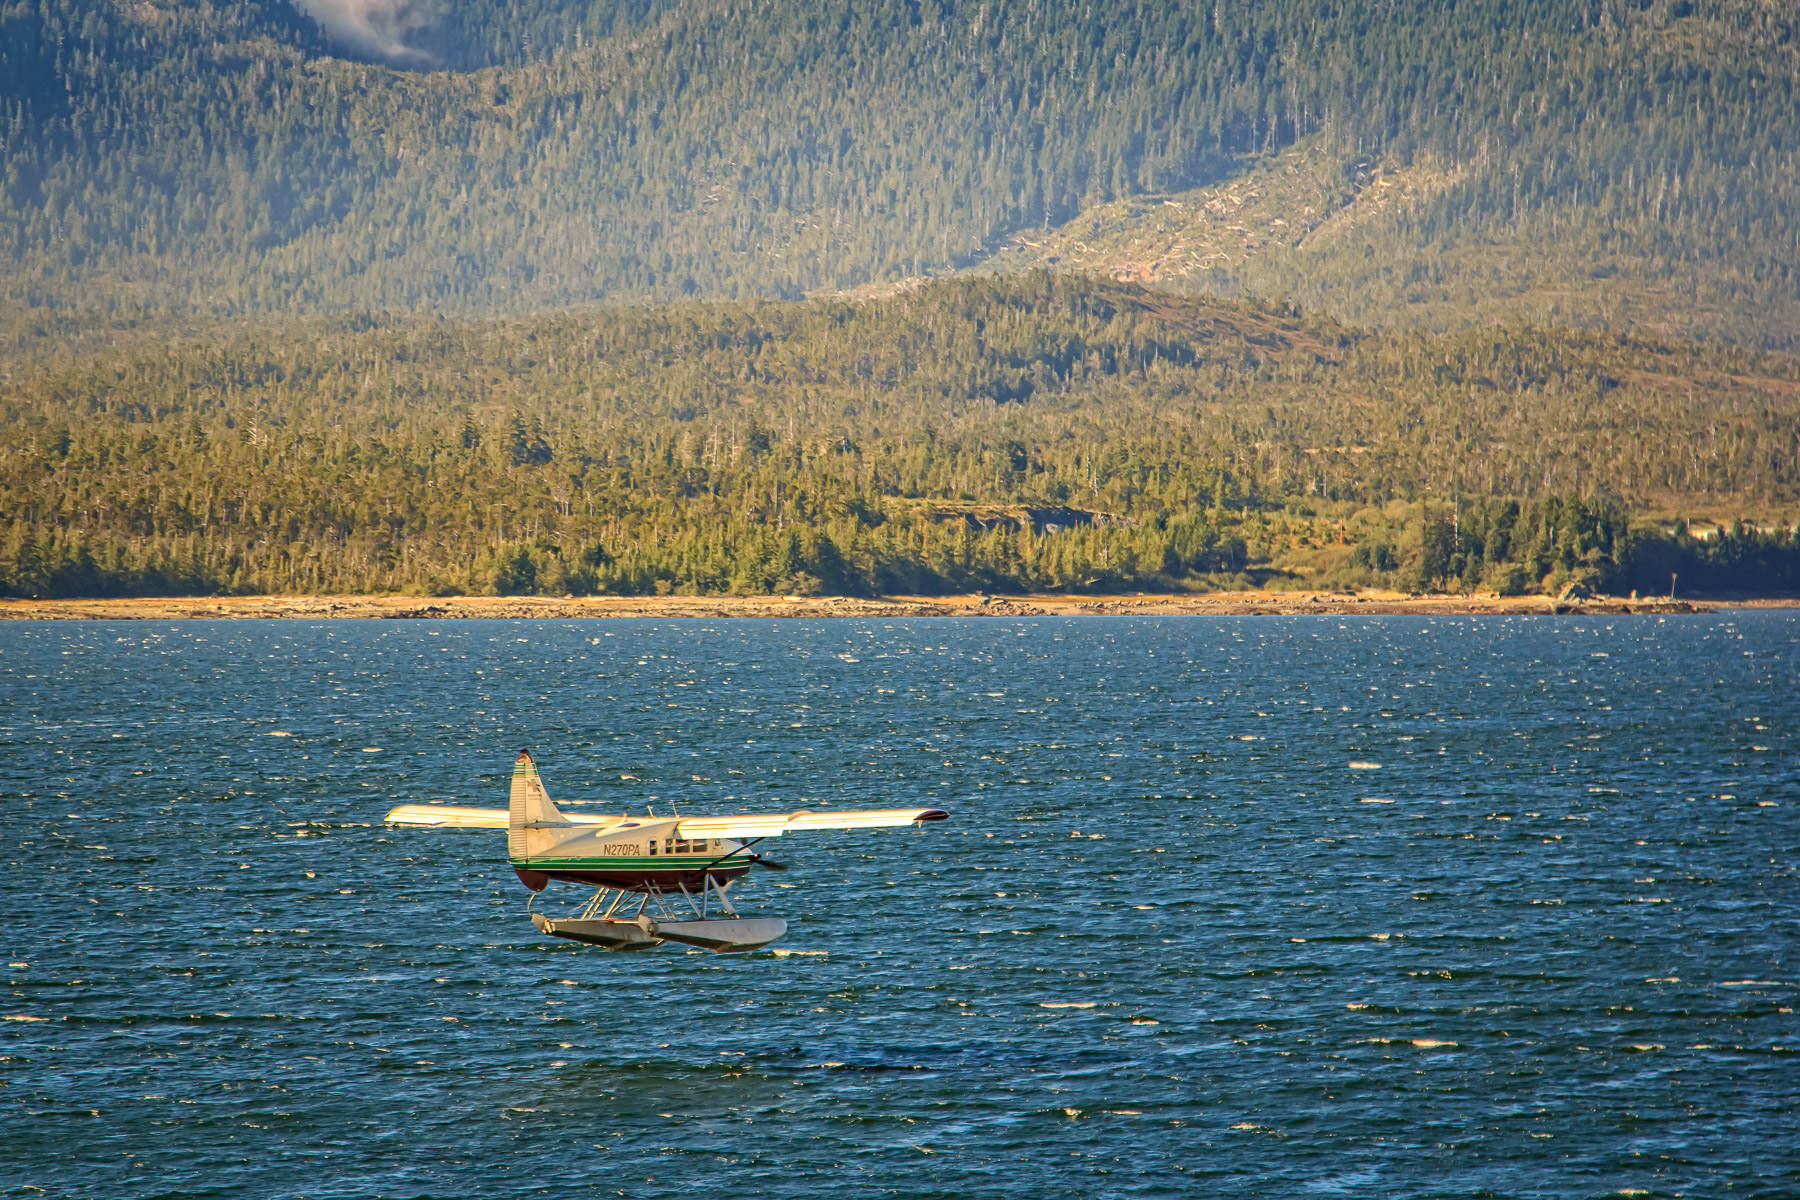 A floatplane lands in the Tongass Narrows in Ketchikan, Alaska.